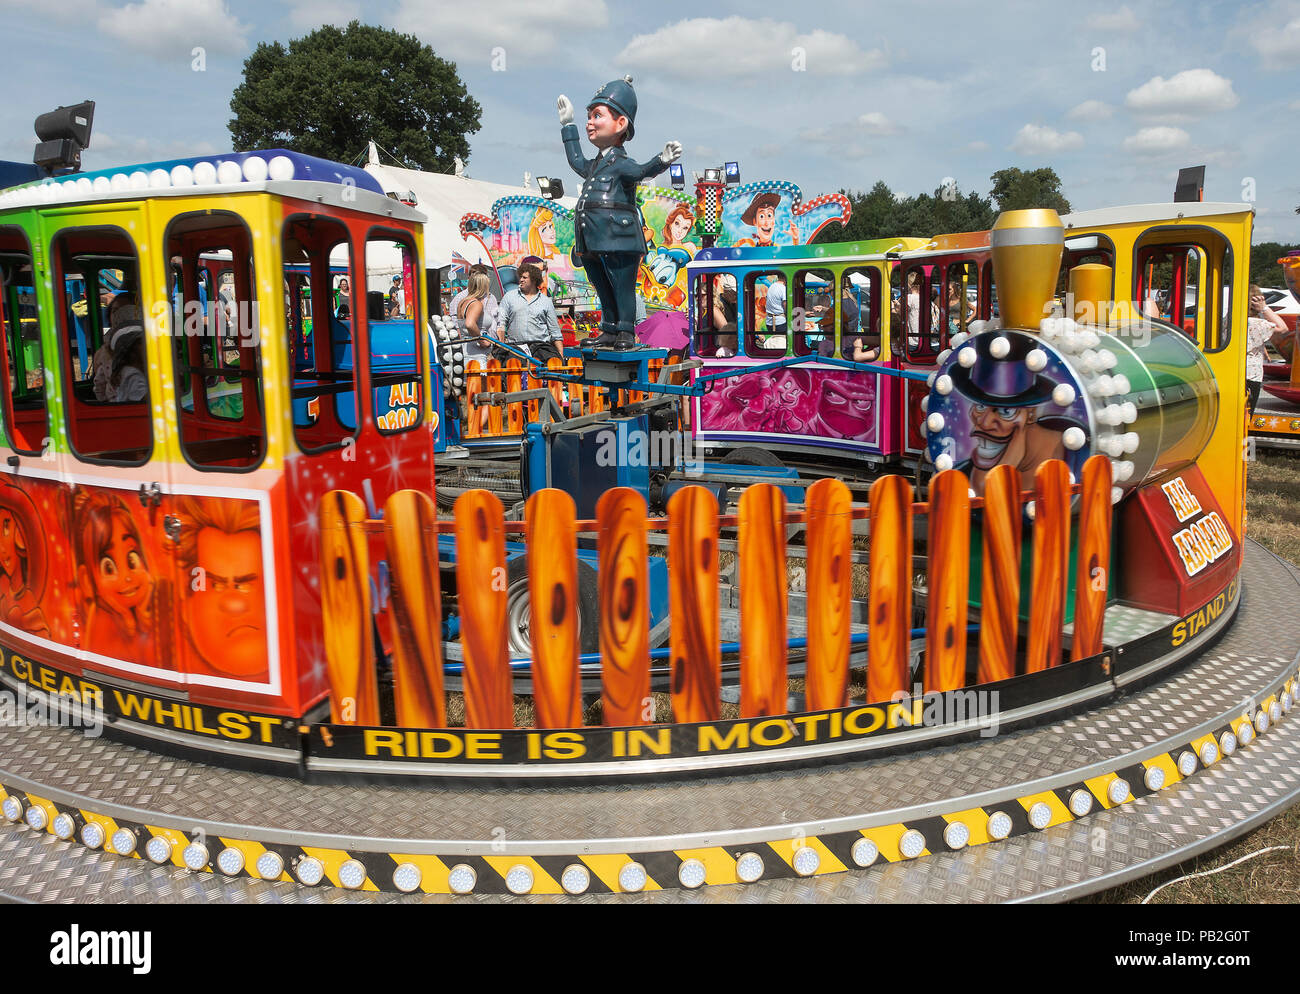 A Small Train Carousel or Roundabout for Child Rides at Nantwich Agricultural Show Cheshire England United Kingdom UK - Stock Image